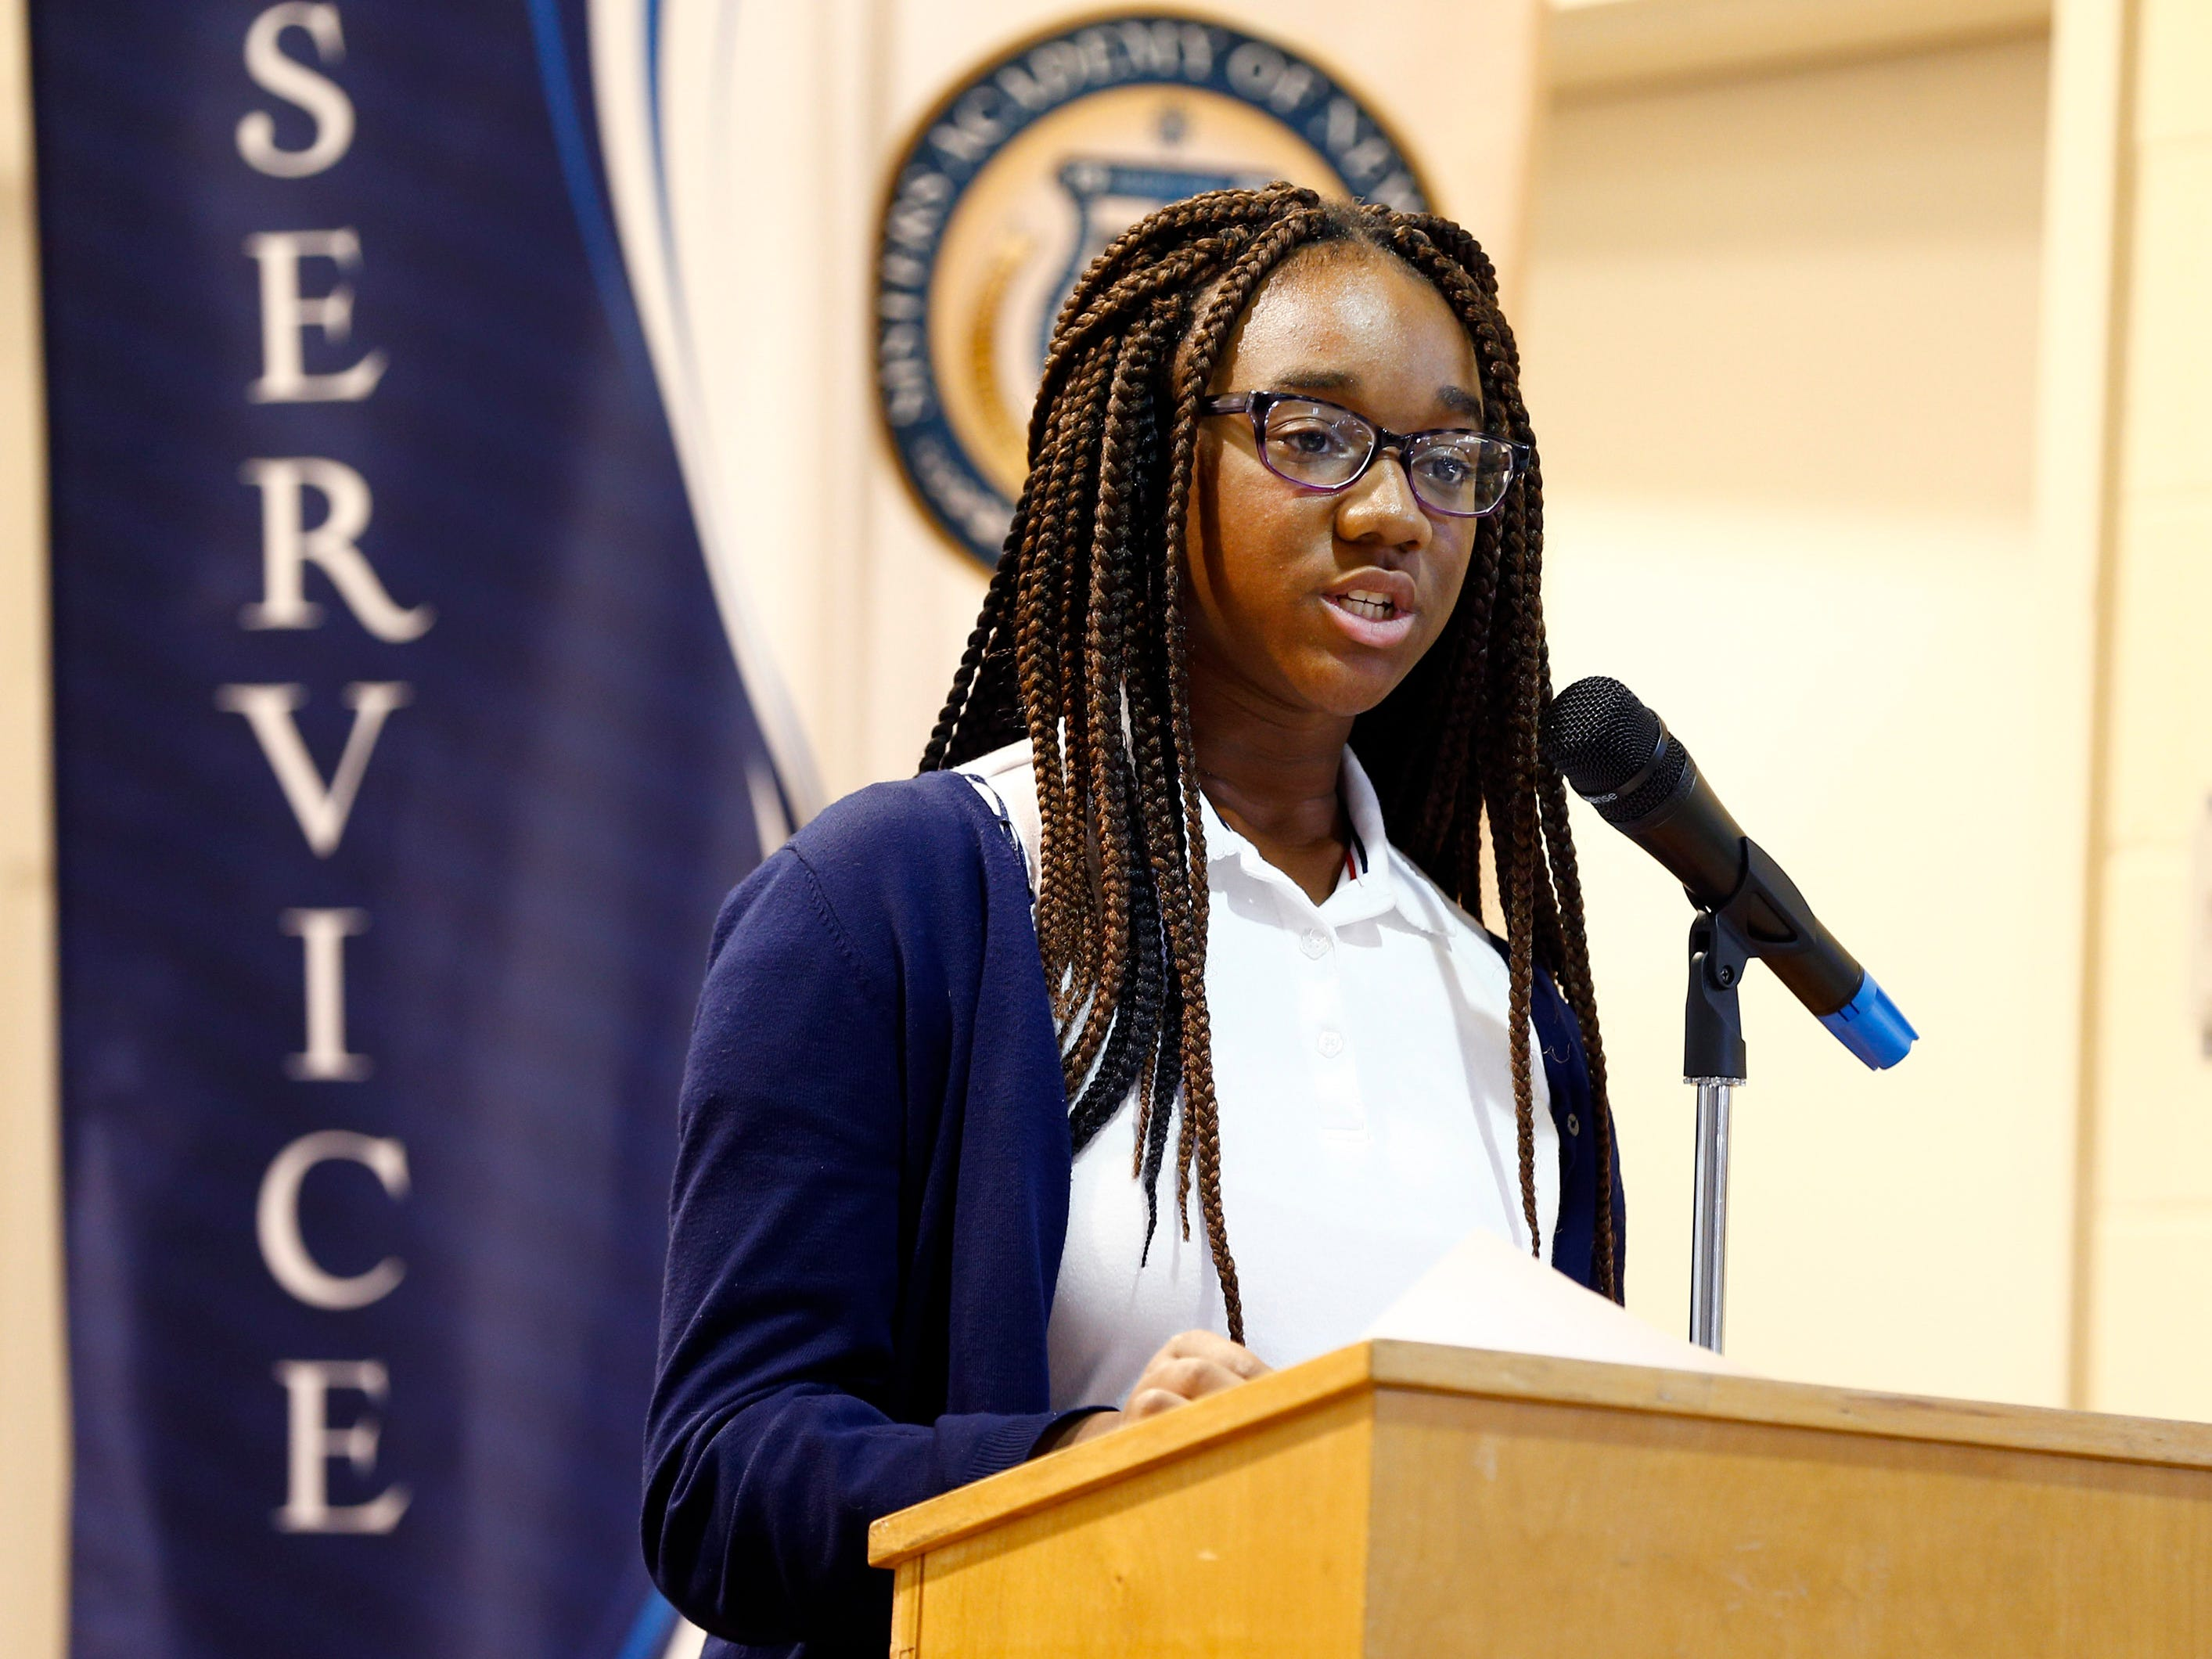 Sisters Academy 8th grader Stephanie Reyes performs her core knowledge speech during the 8th Annual Miller Speaking Contest at the Asbury Park school Thursday, March 14, 2019.